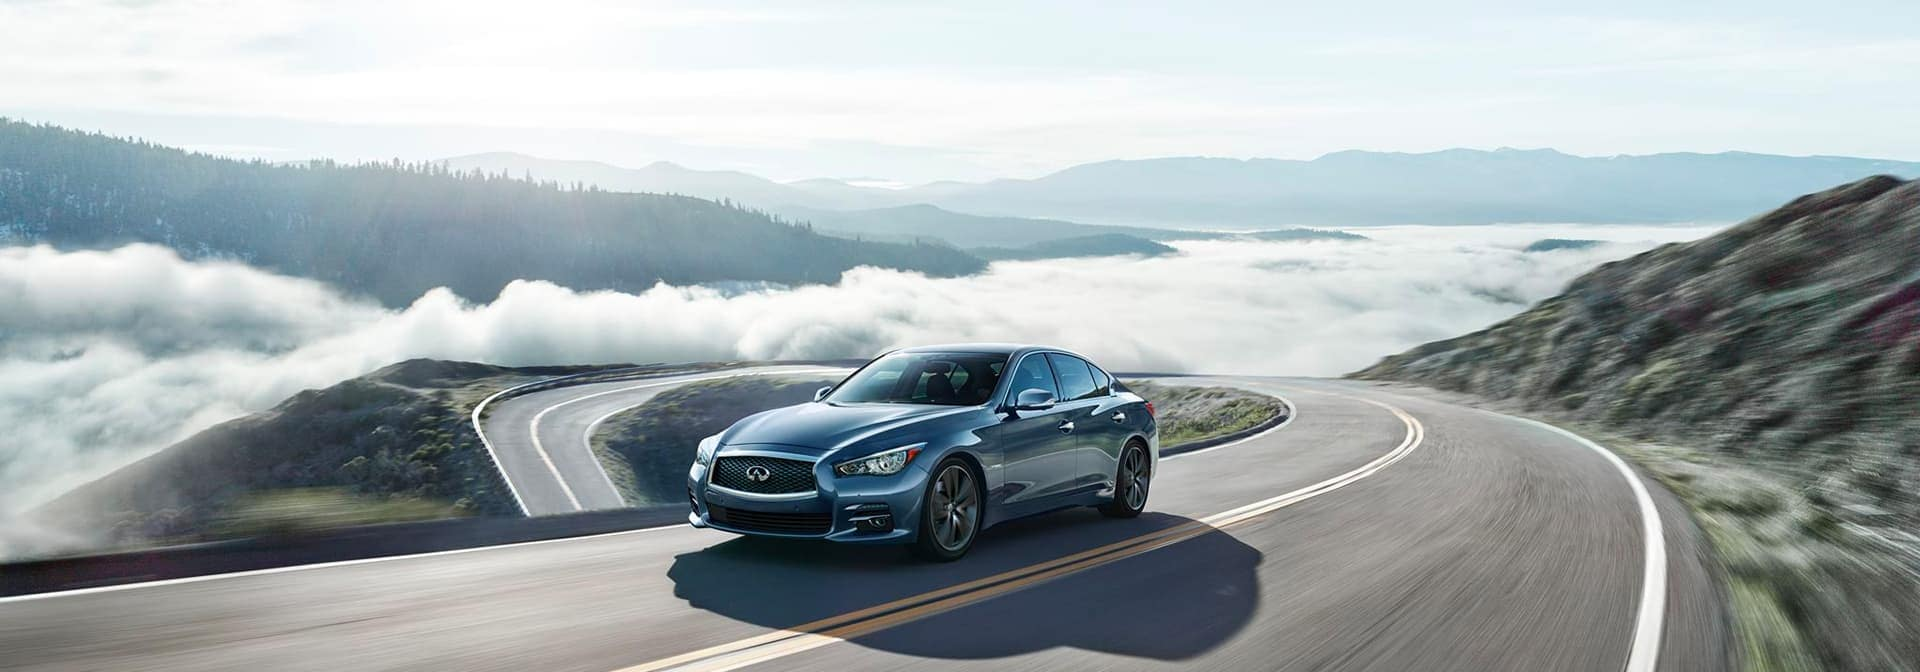 San Jose Car Dealerships >> Infiniti Of San Jose Infiniti Dealer In San Jose Ca